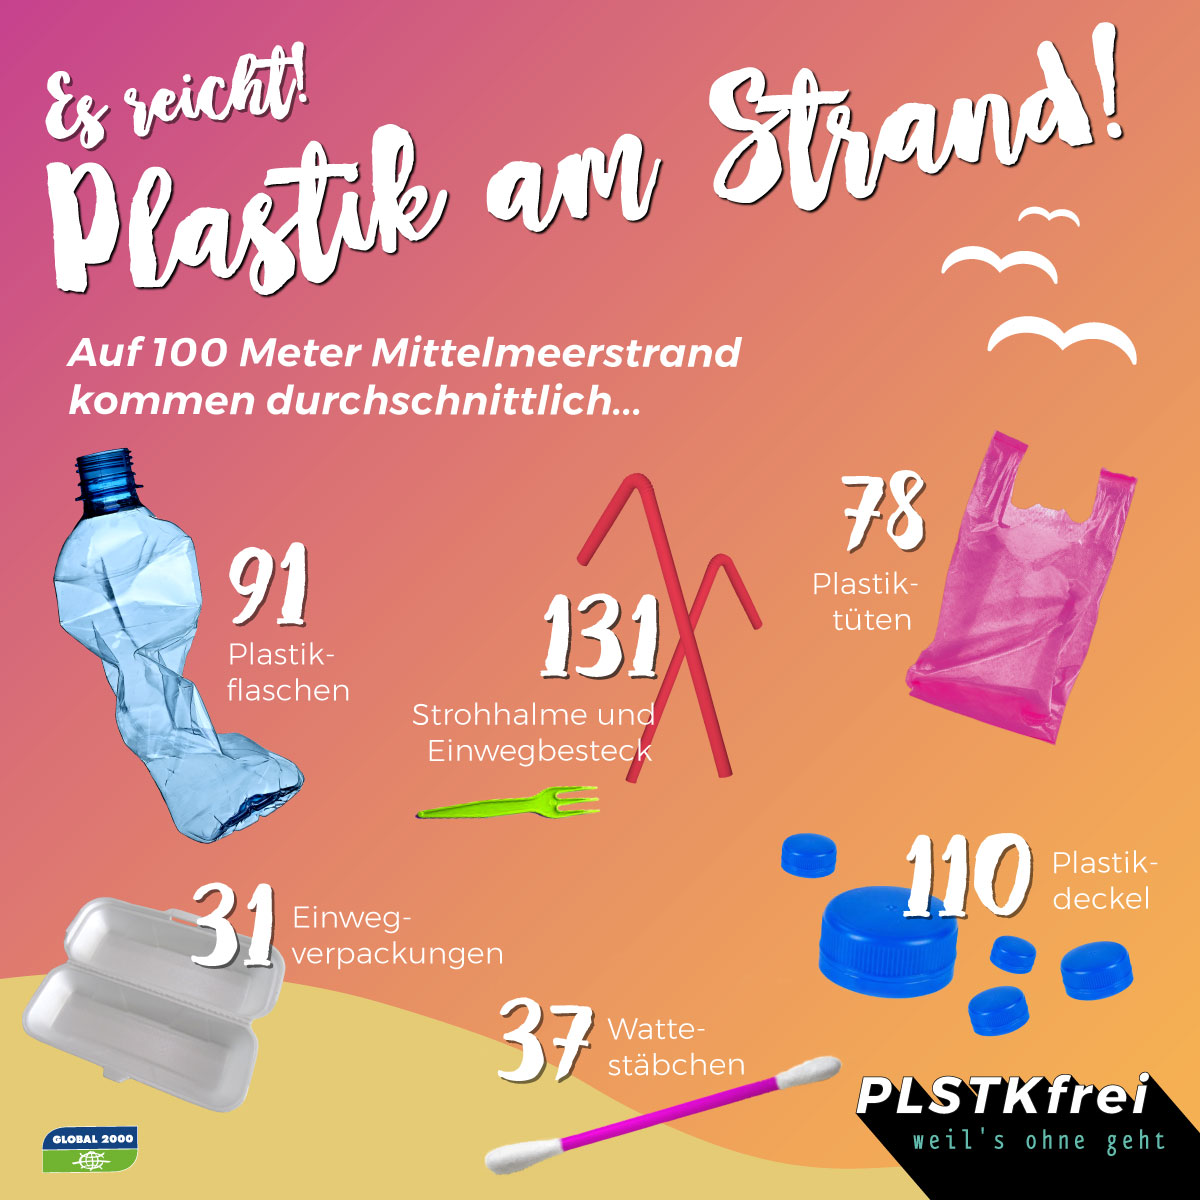 Grafik: Plastik am Strand